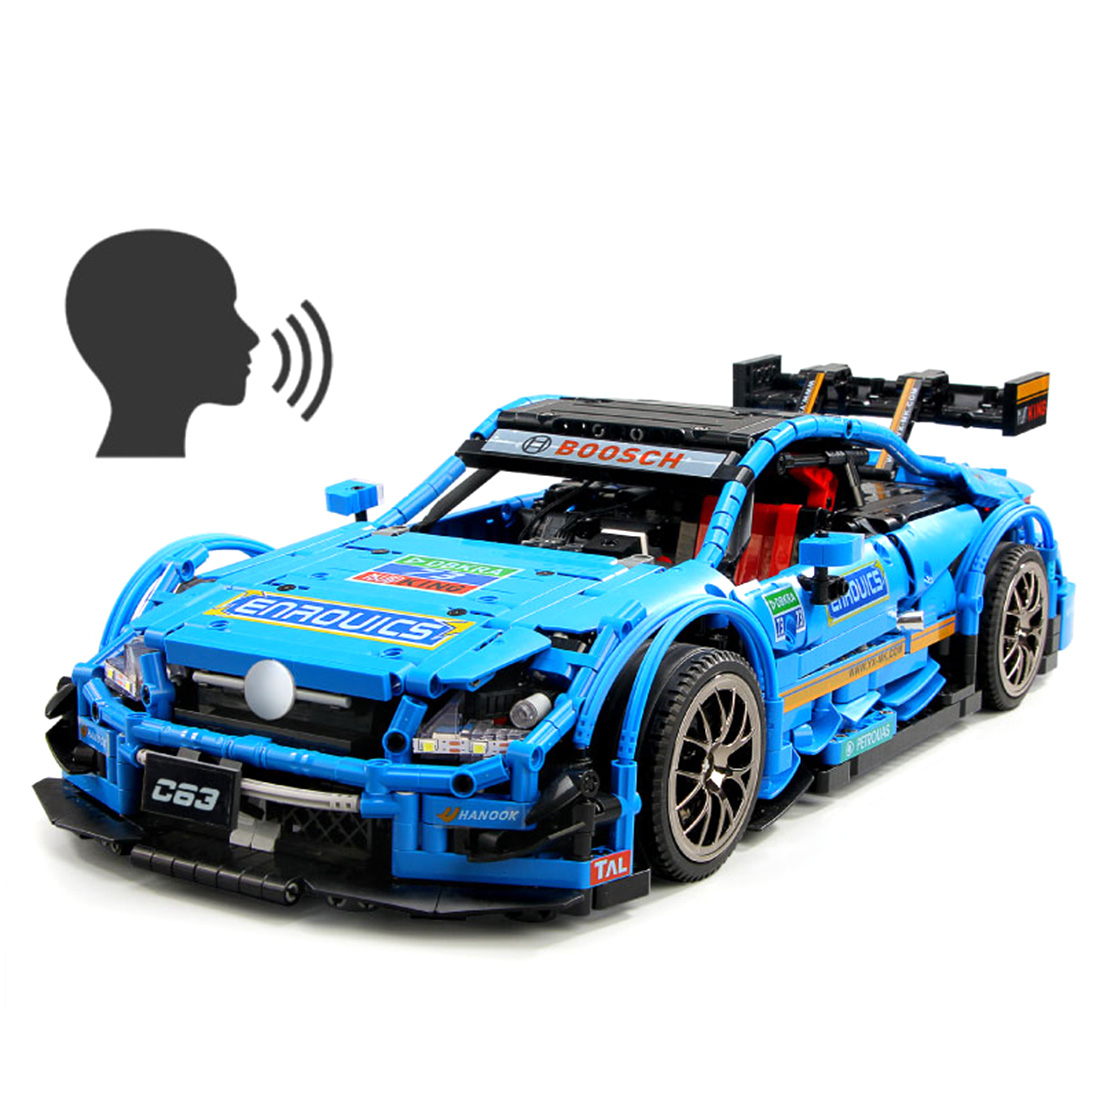 1989Pcs 1:8 MOC-6687 2.4G DIY Assembly Sports Car Building Block Construction Kit With Remote Control Programming